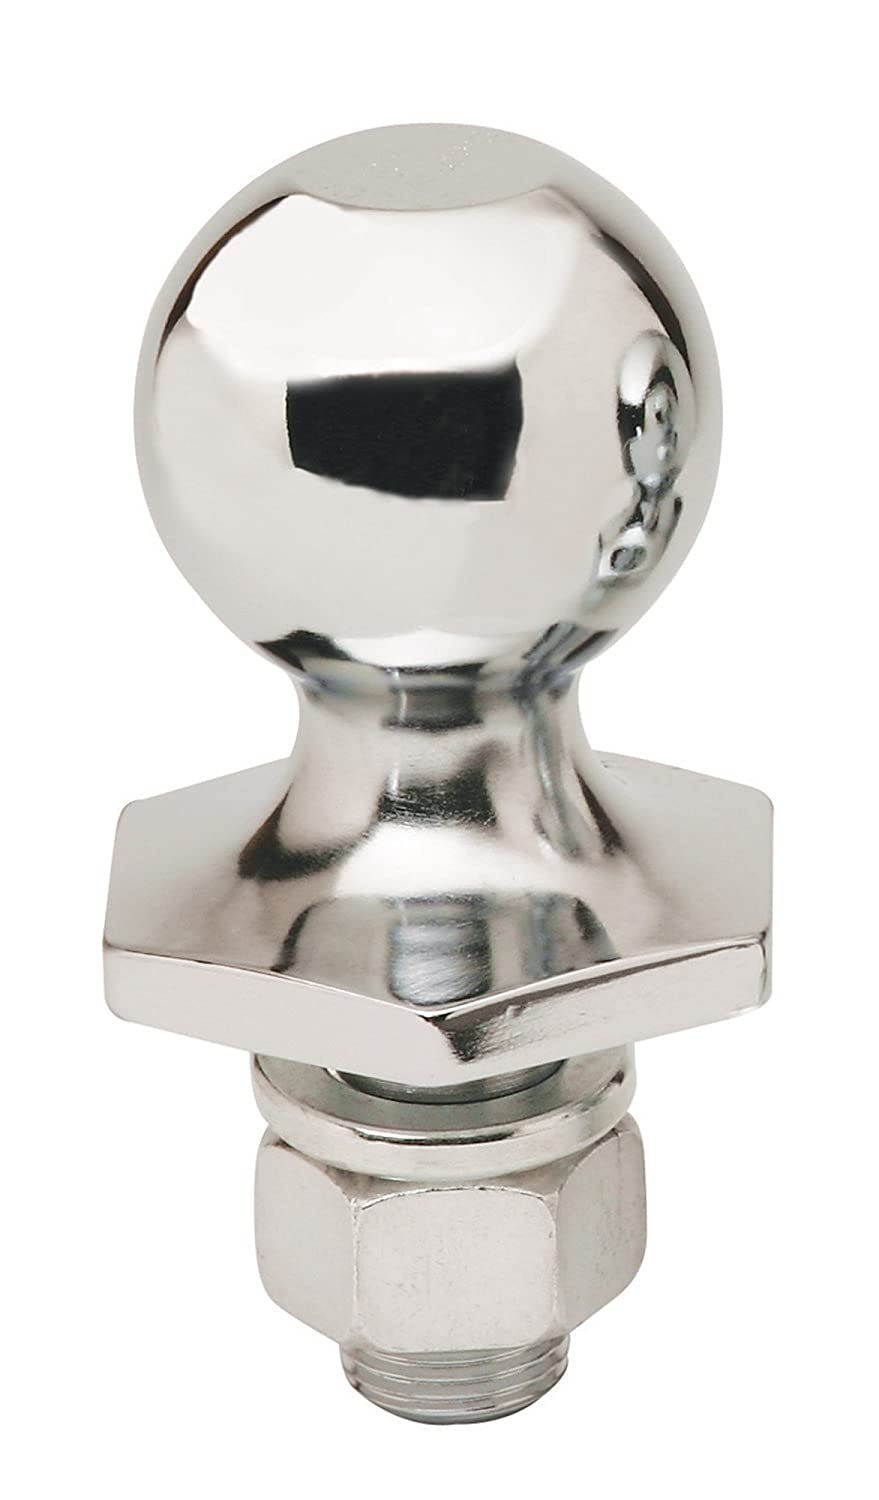 Reese Towpower 7071200 Carbon Forged 1-7/8' Chrome Interlock Hitch Ball